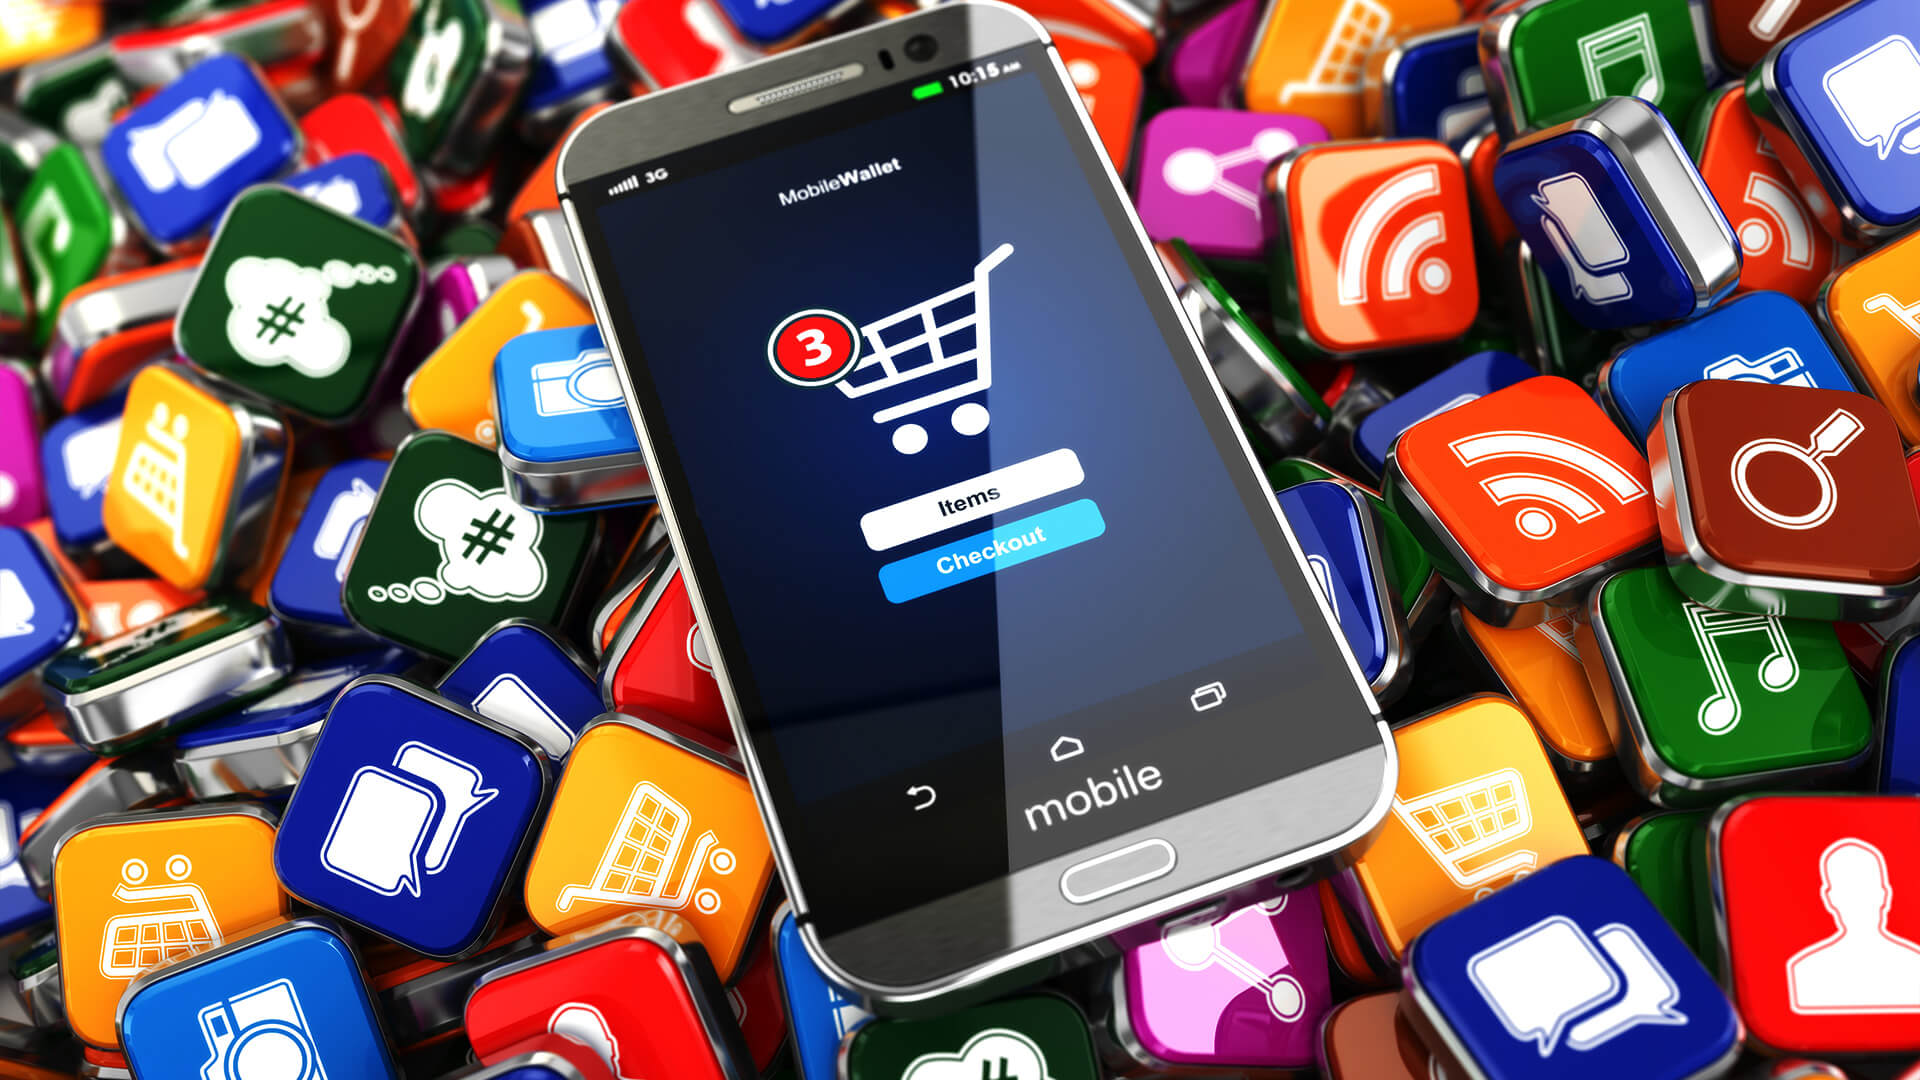 Report: Product advertising is driving spend growth in search, social, marketplace - Search Engine Land